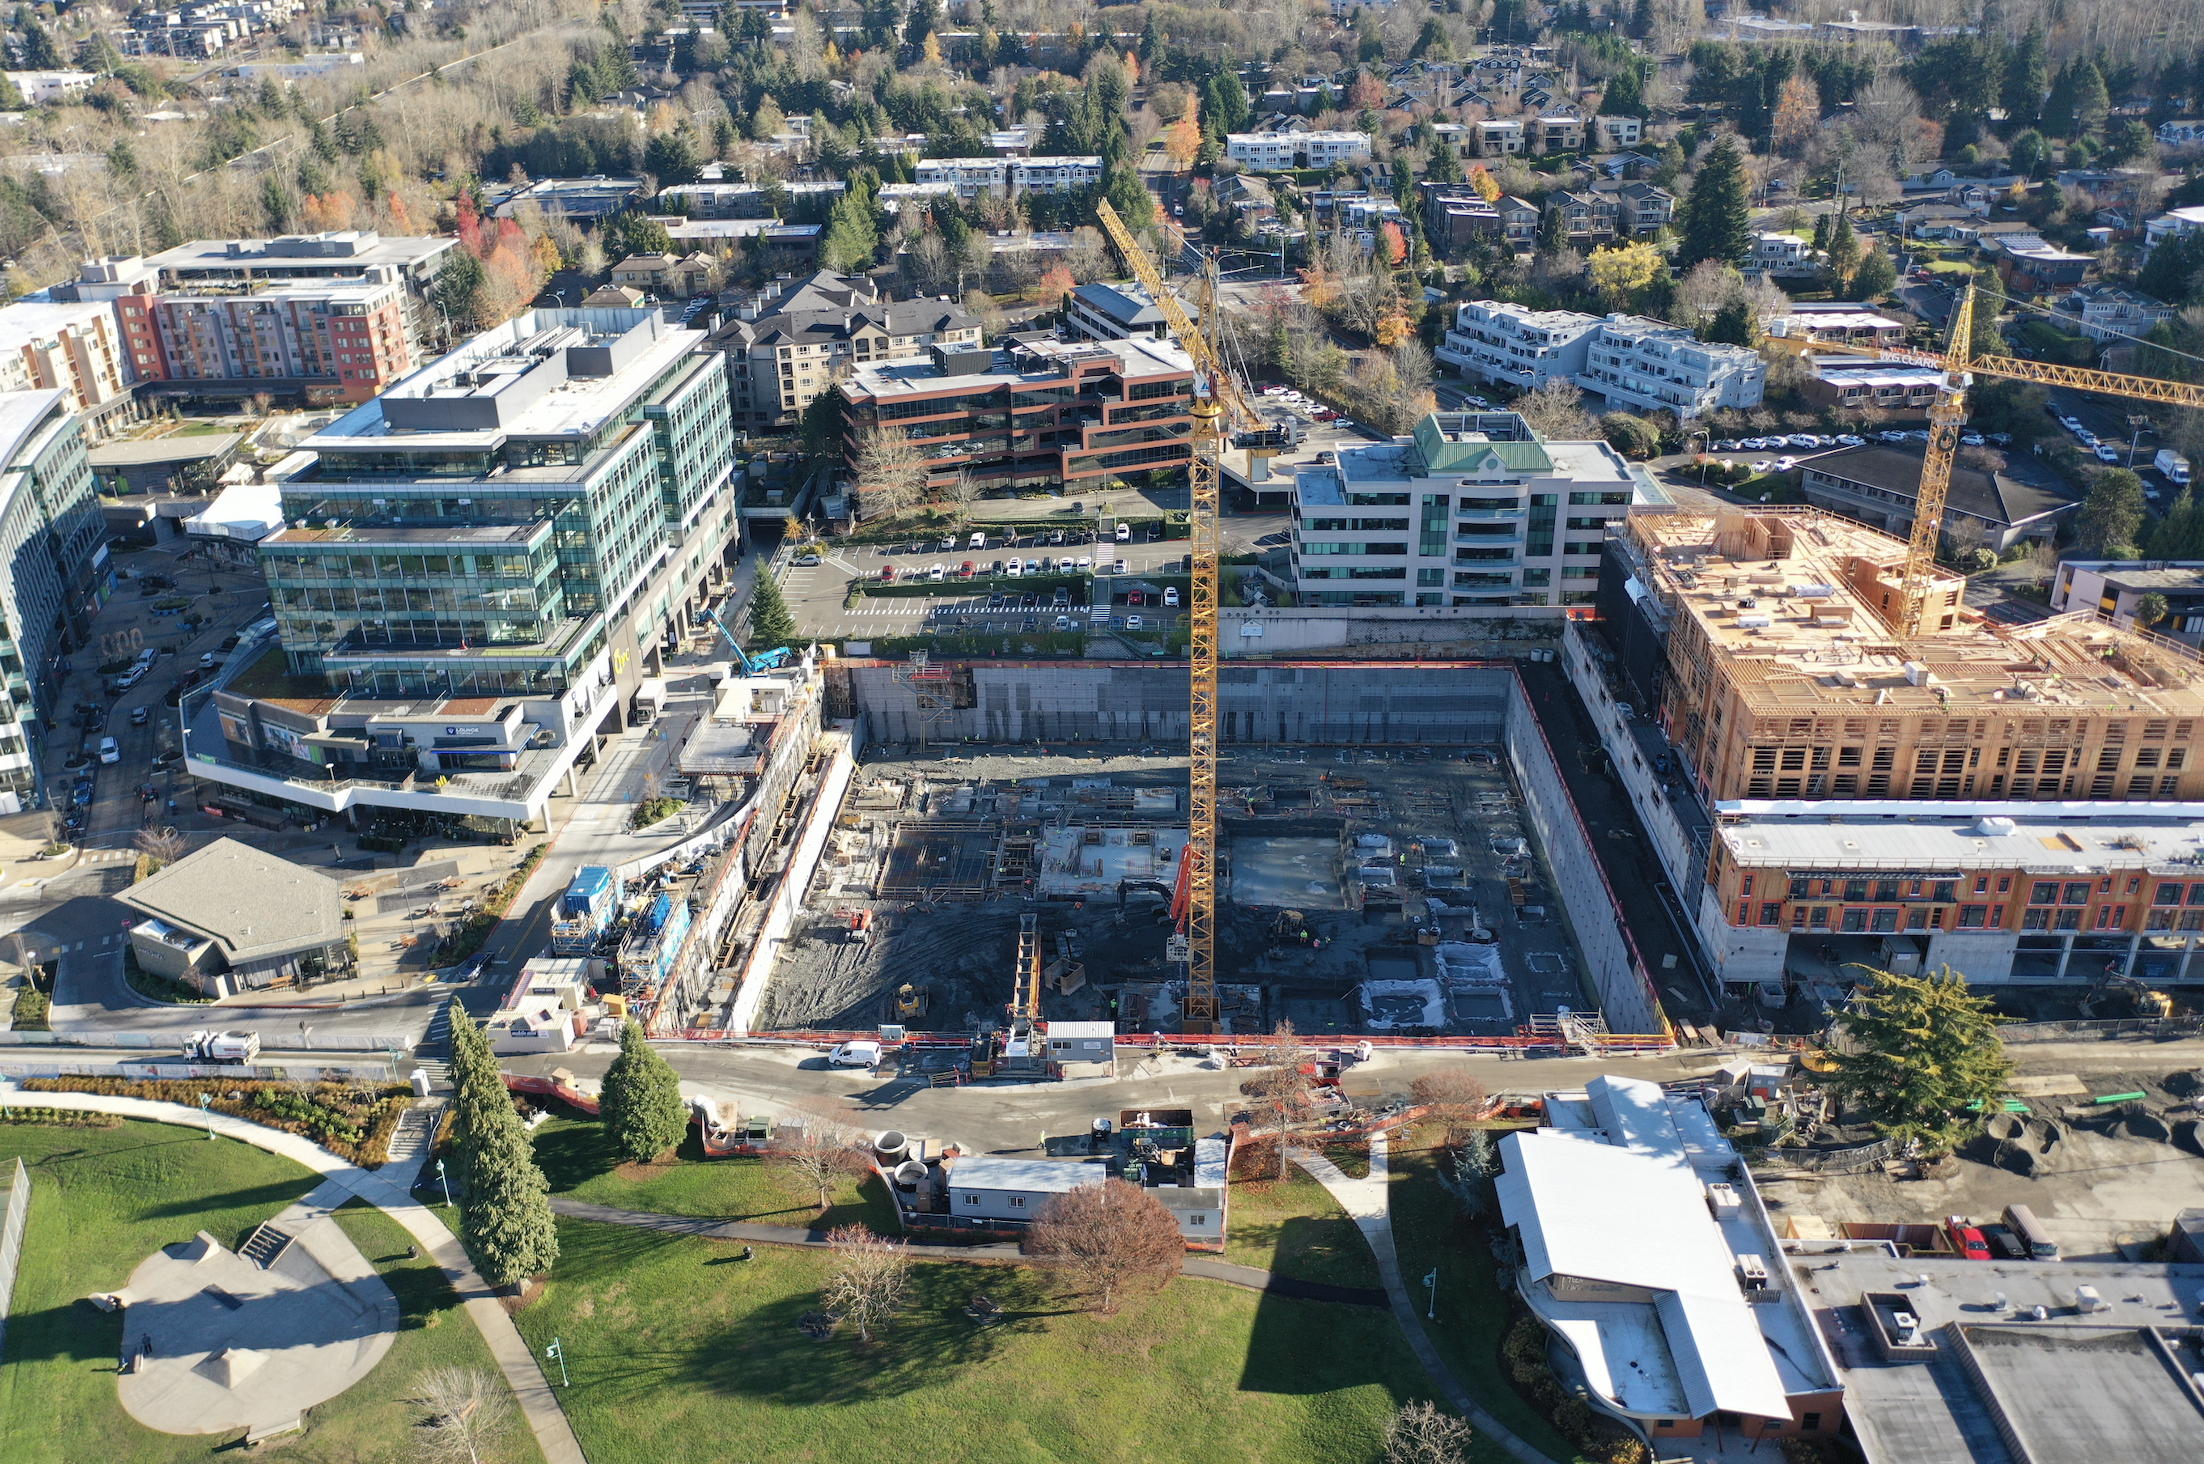 Google tops 6,300 employees in Seattle area, will invest $7B in new U.S. offices this year